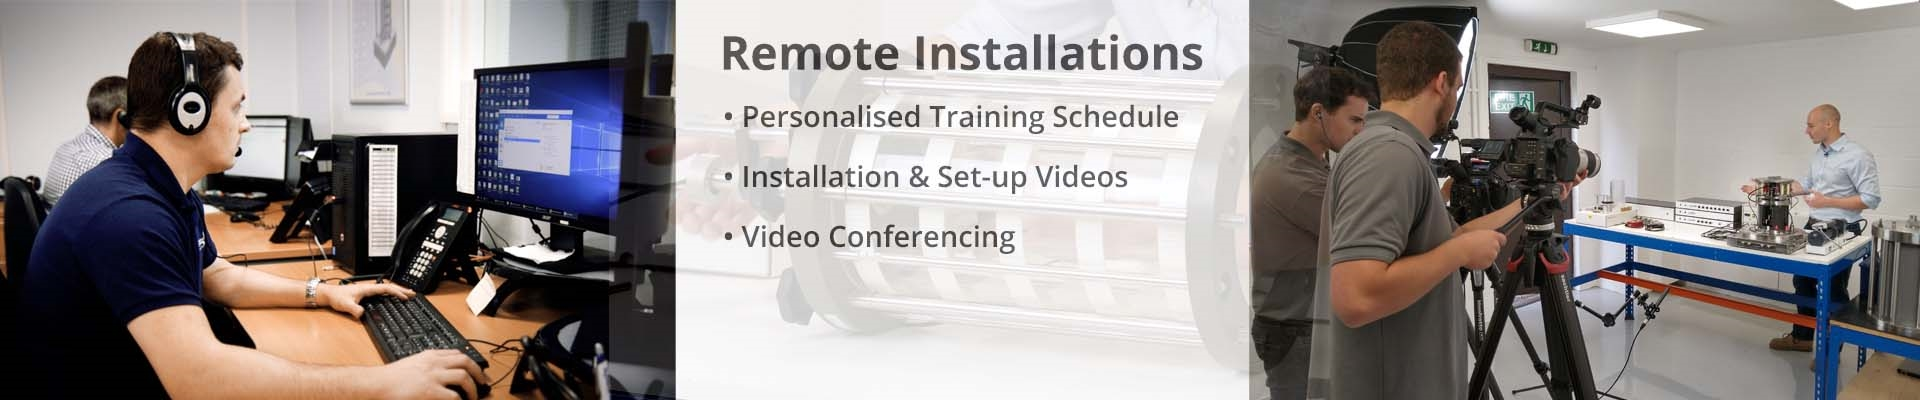 Remote Installations